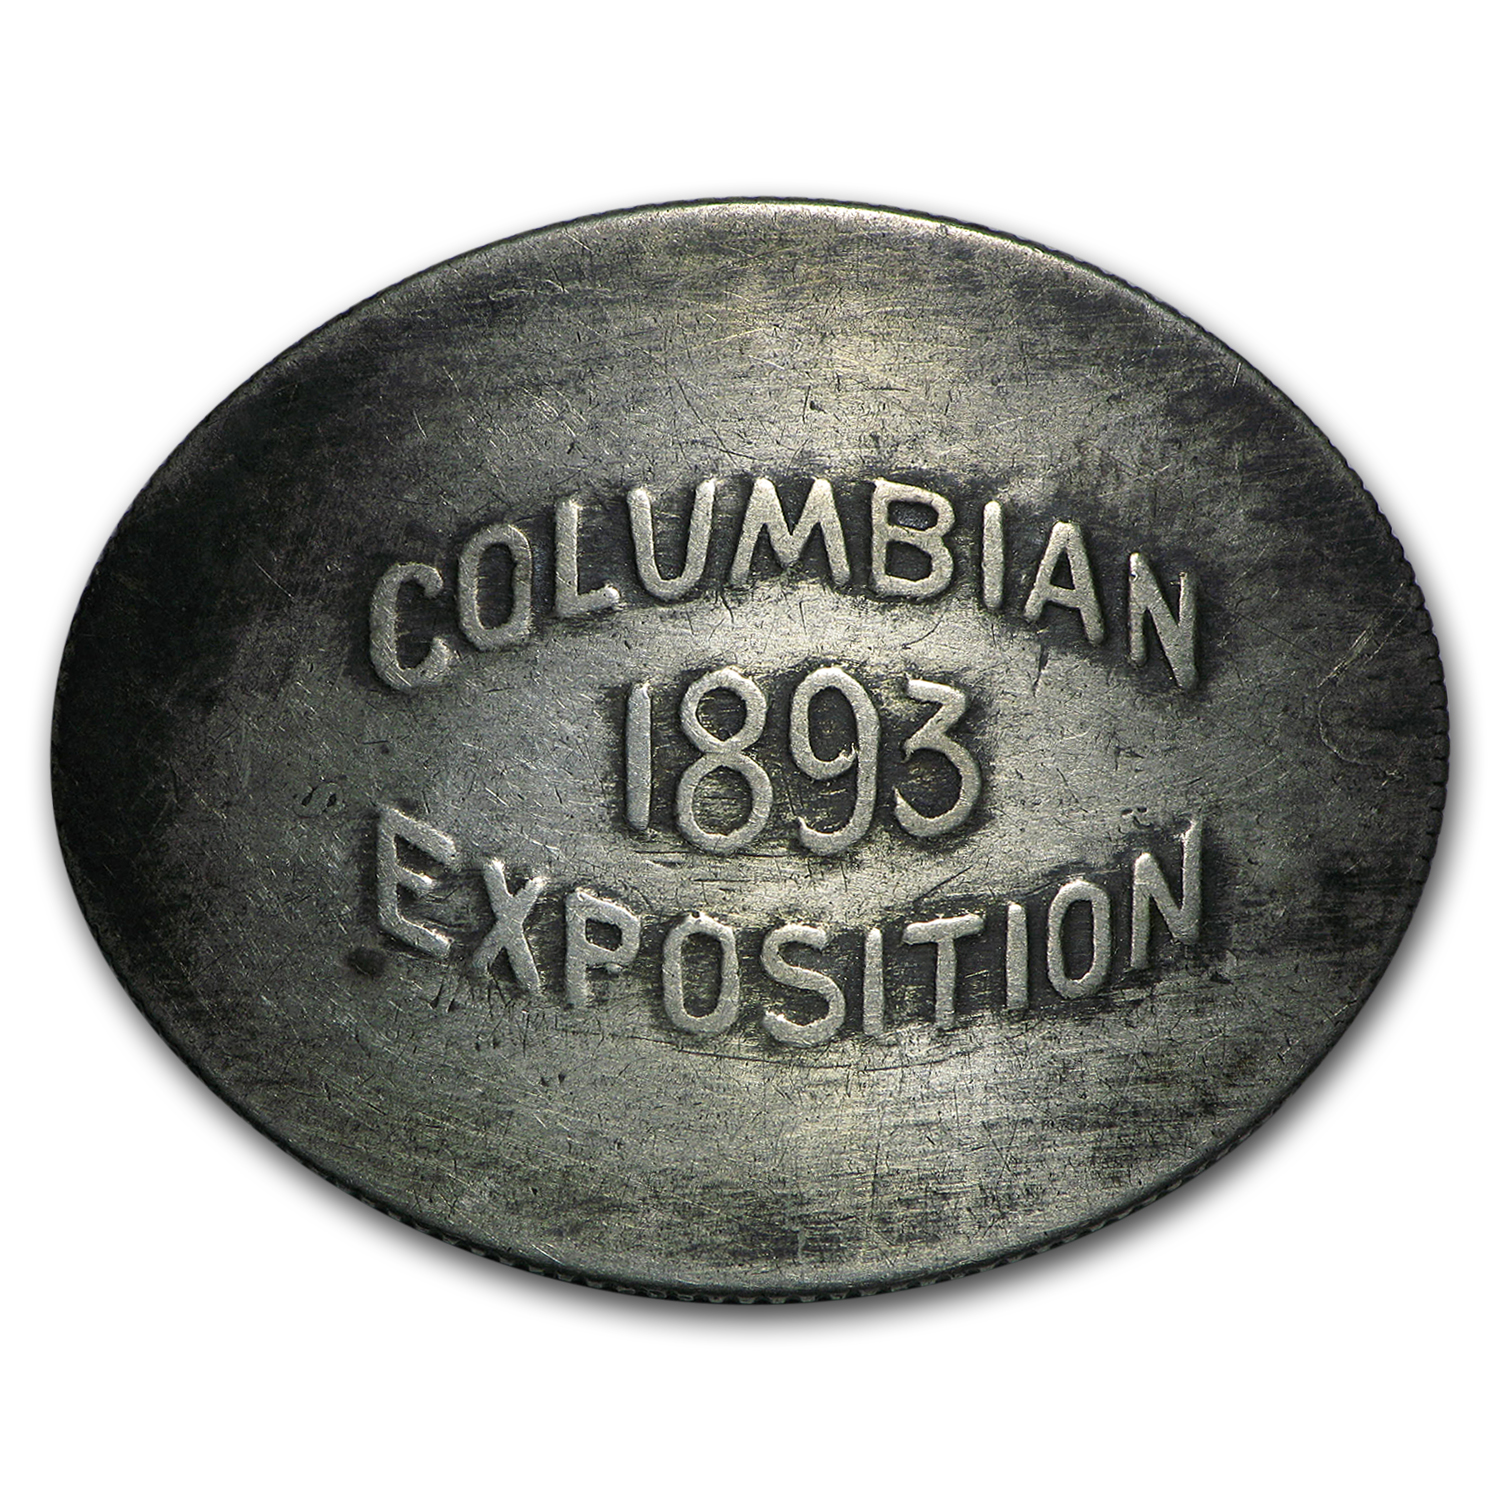 1893 Columbian Expo Elongate (Host Coin - 1883 Seated Dime)